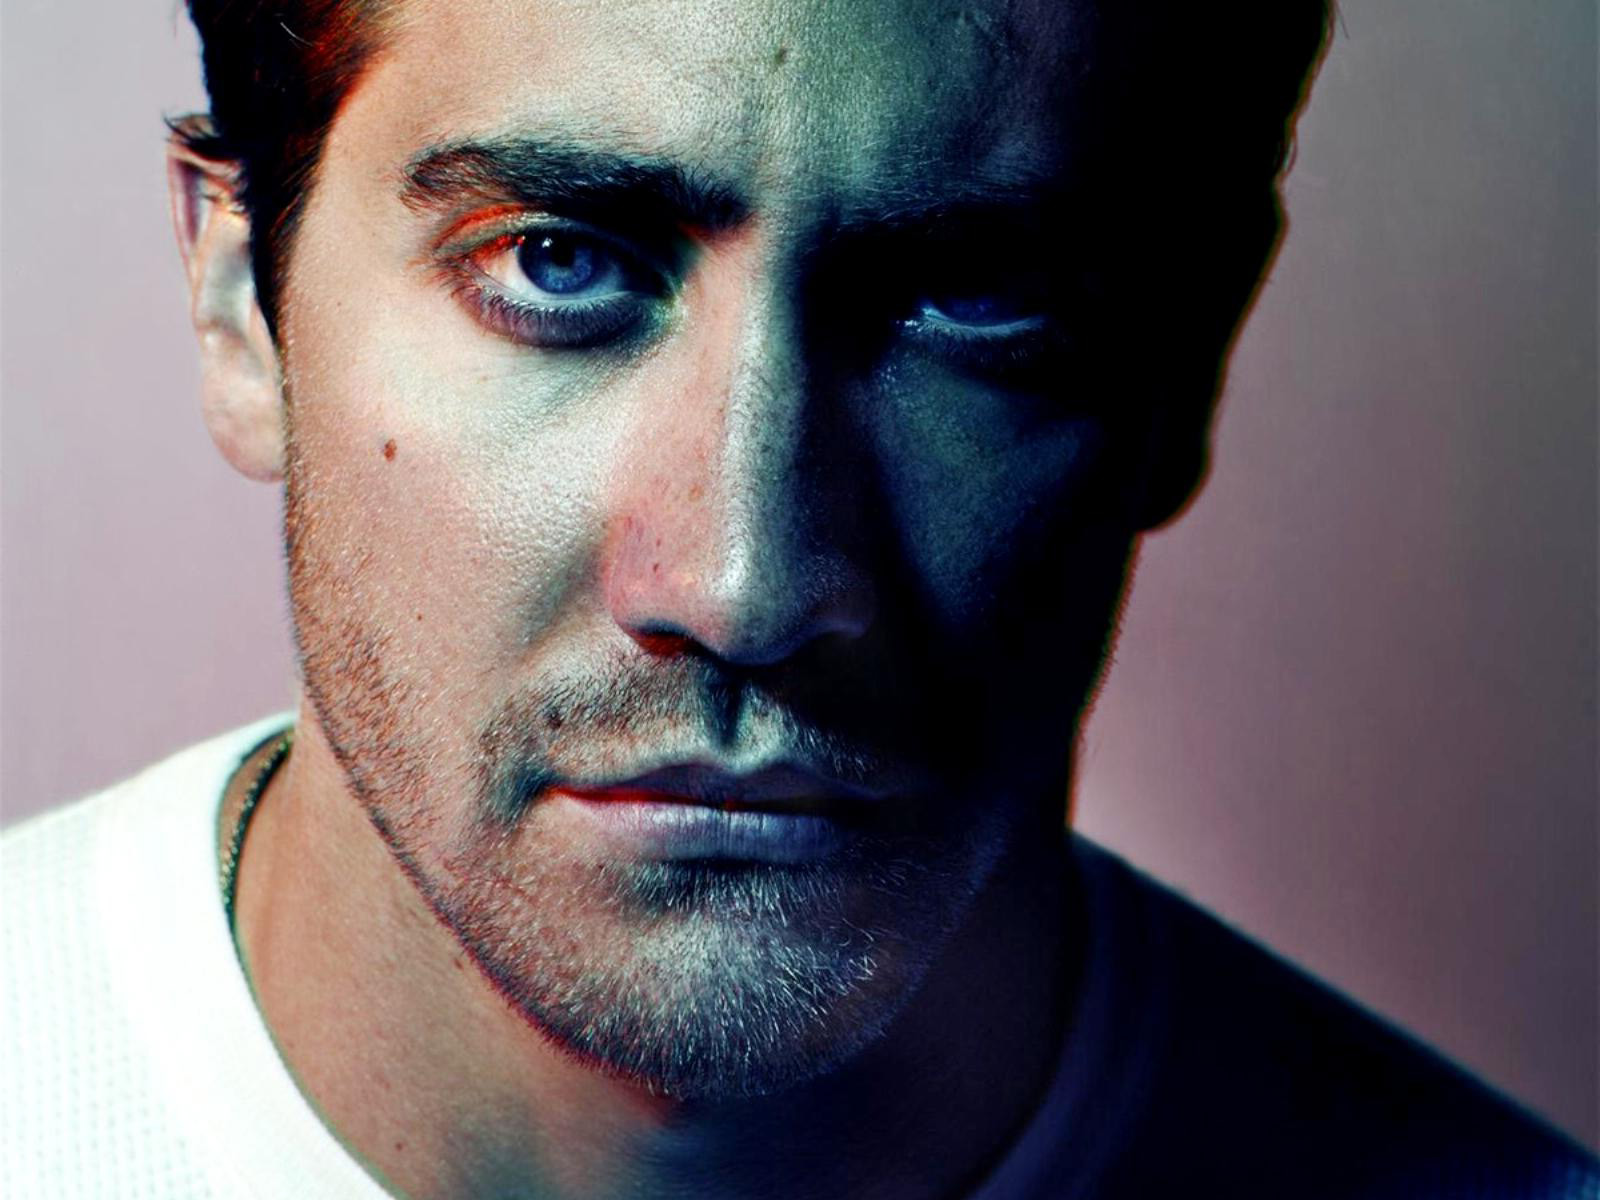 jake gyllenhaal sexy actor hd wallpaper 2418